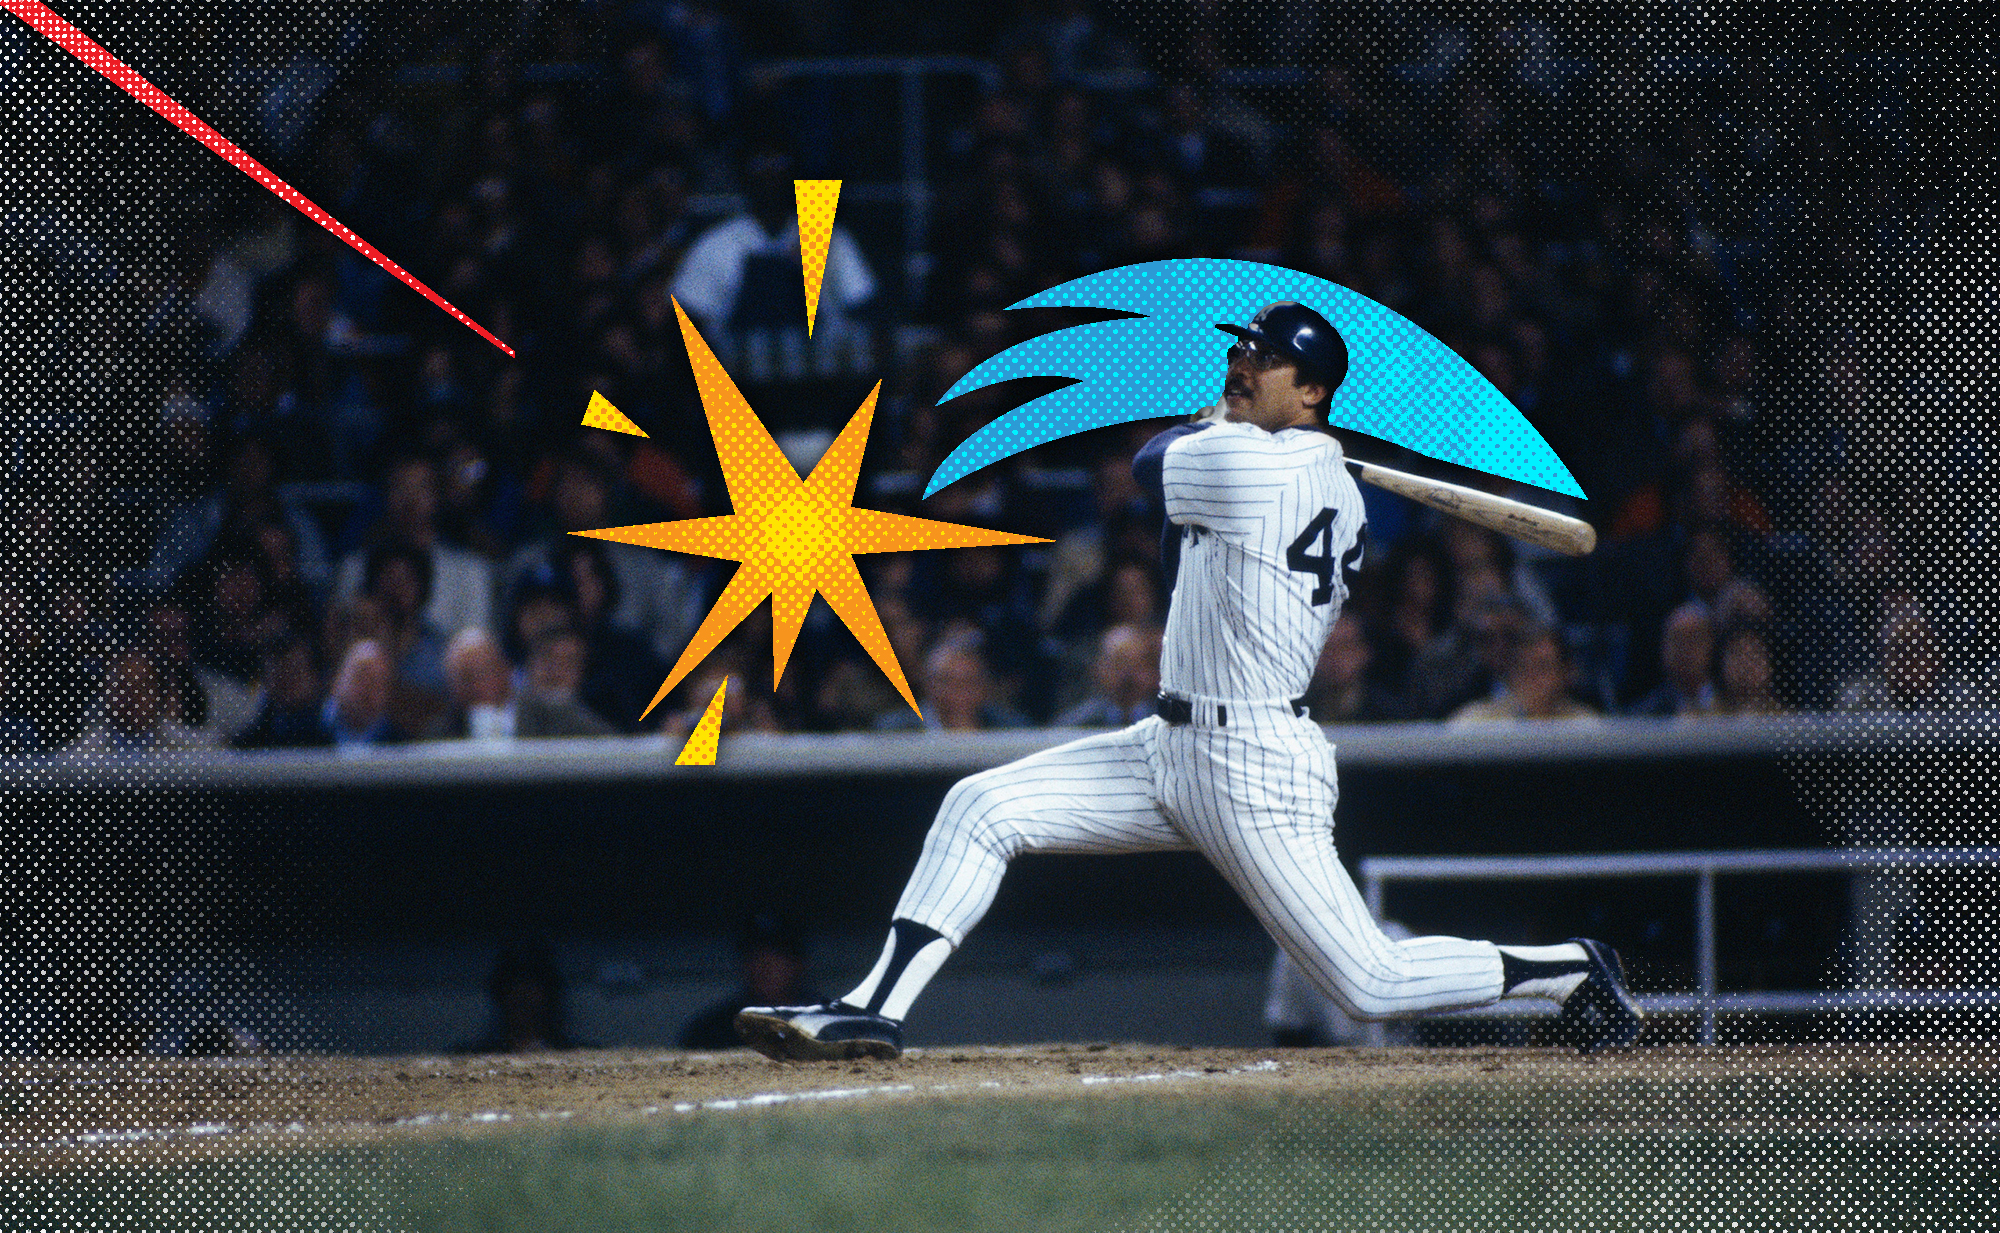 Photo of Reggie Jackson hitting a home run for the Yankees with pop art graphics showing the swing and crack of the bat, and the trajectory of the ball.